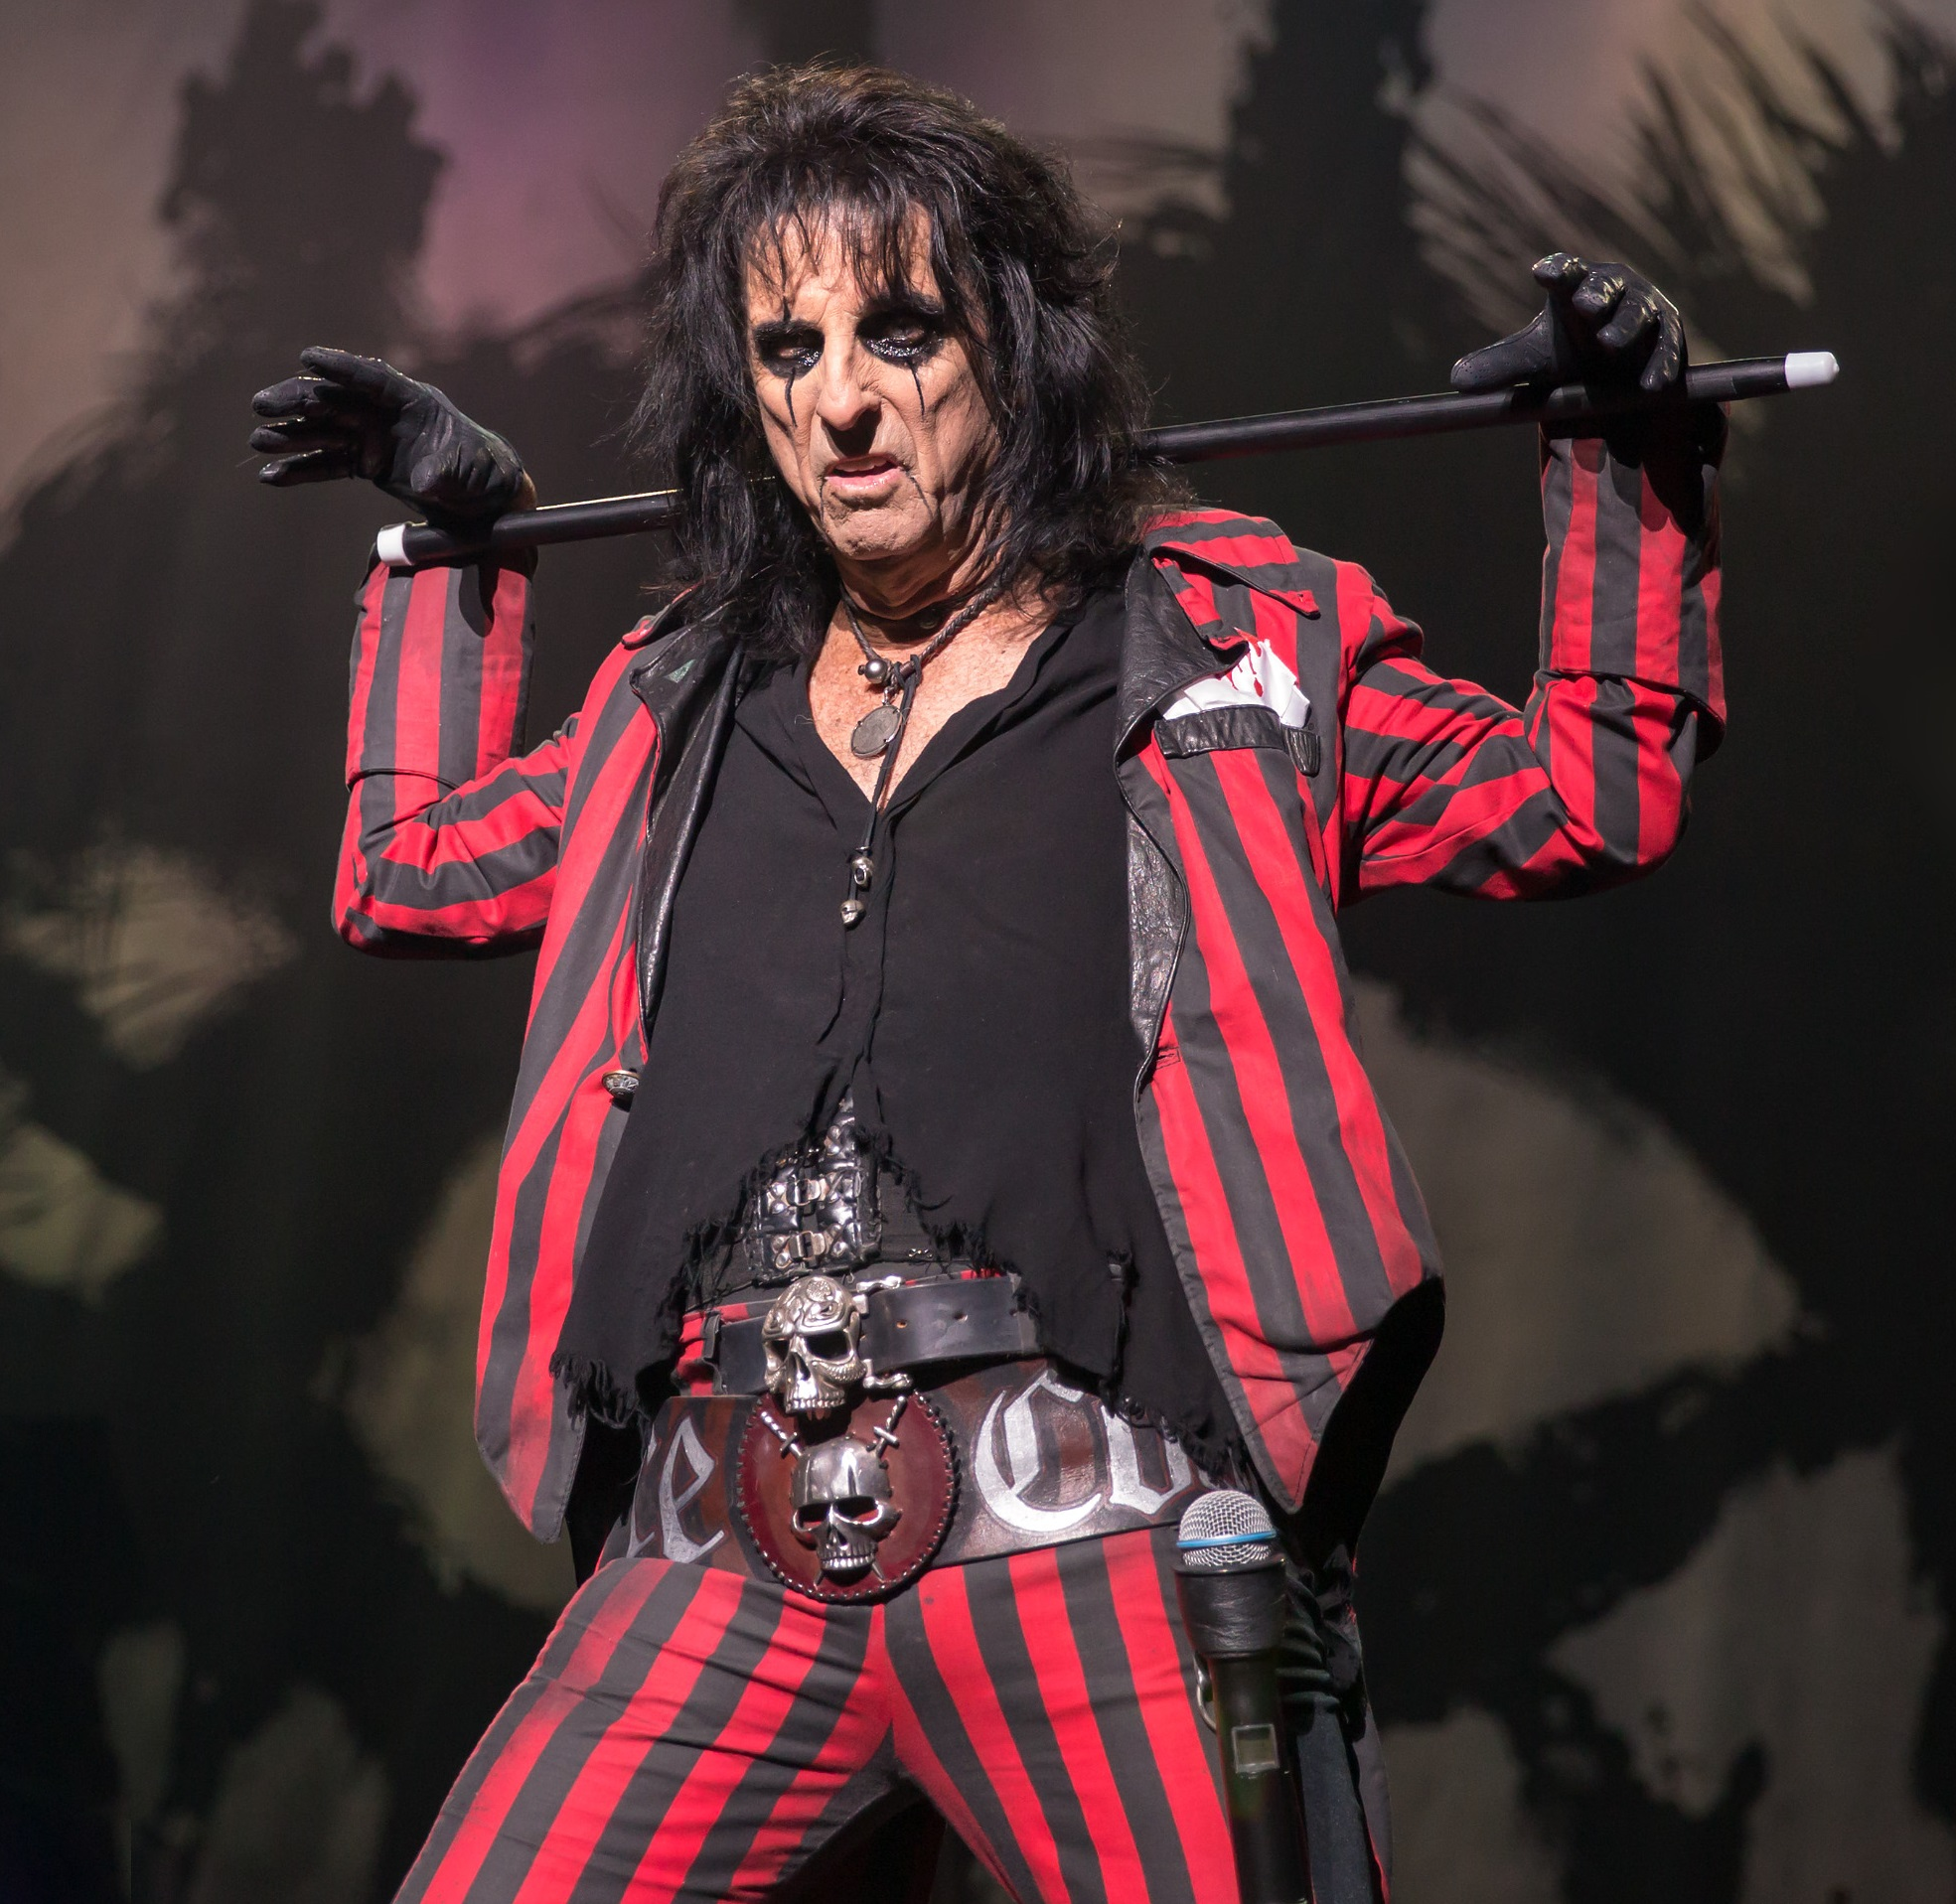 Rock Star Pisses Off Whole City With Werewolf Facebook Question Alice Cooper 2015